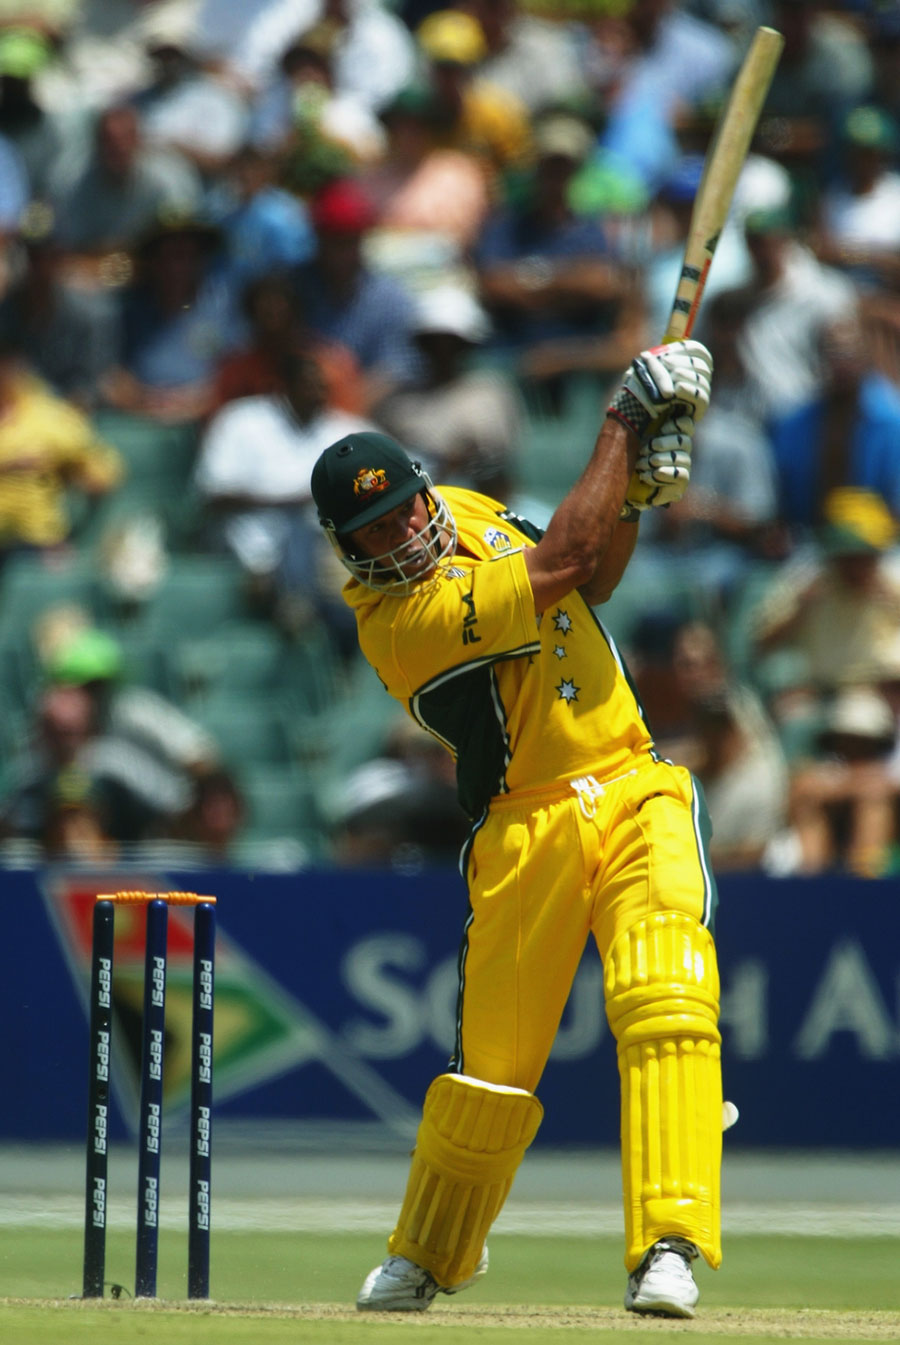 Road to 2015 World Cup: Players with highest batting average in World Cup history 2